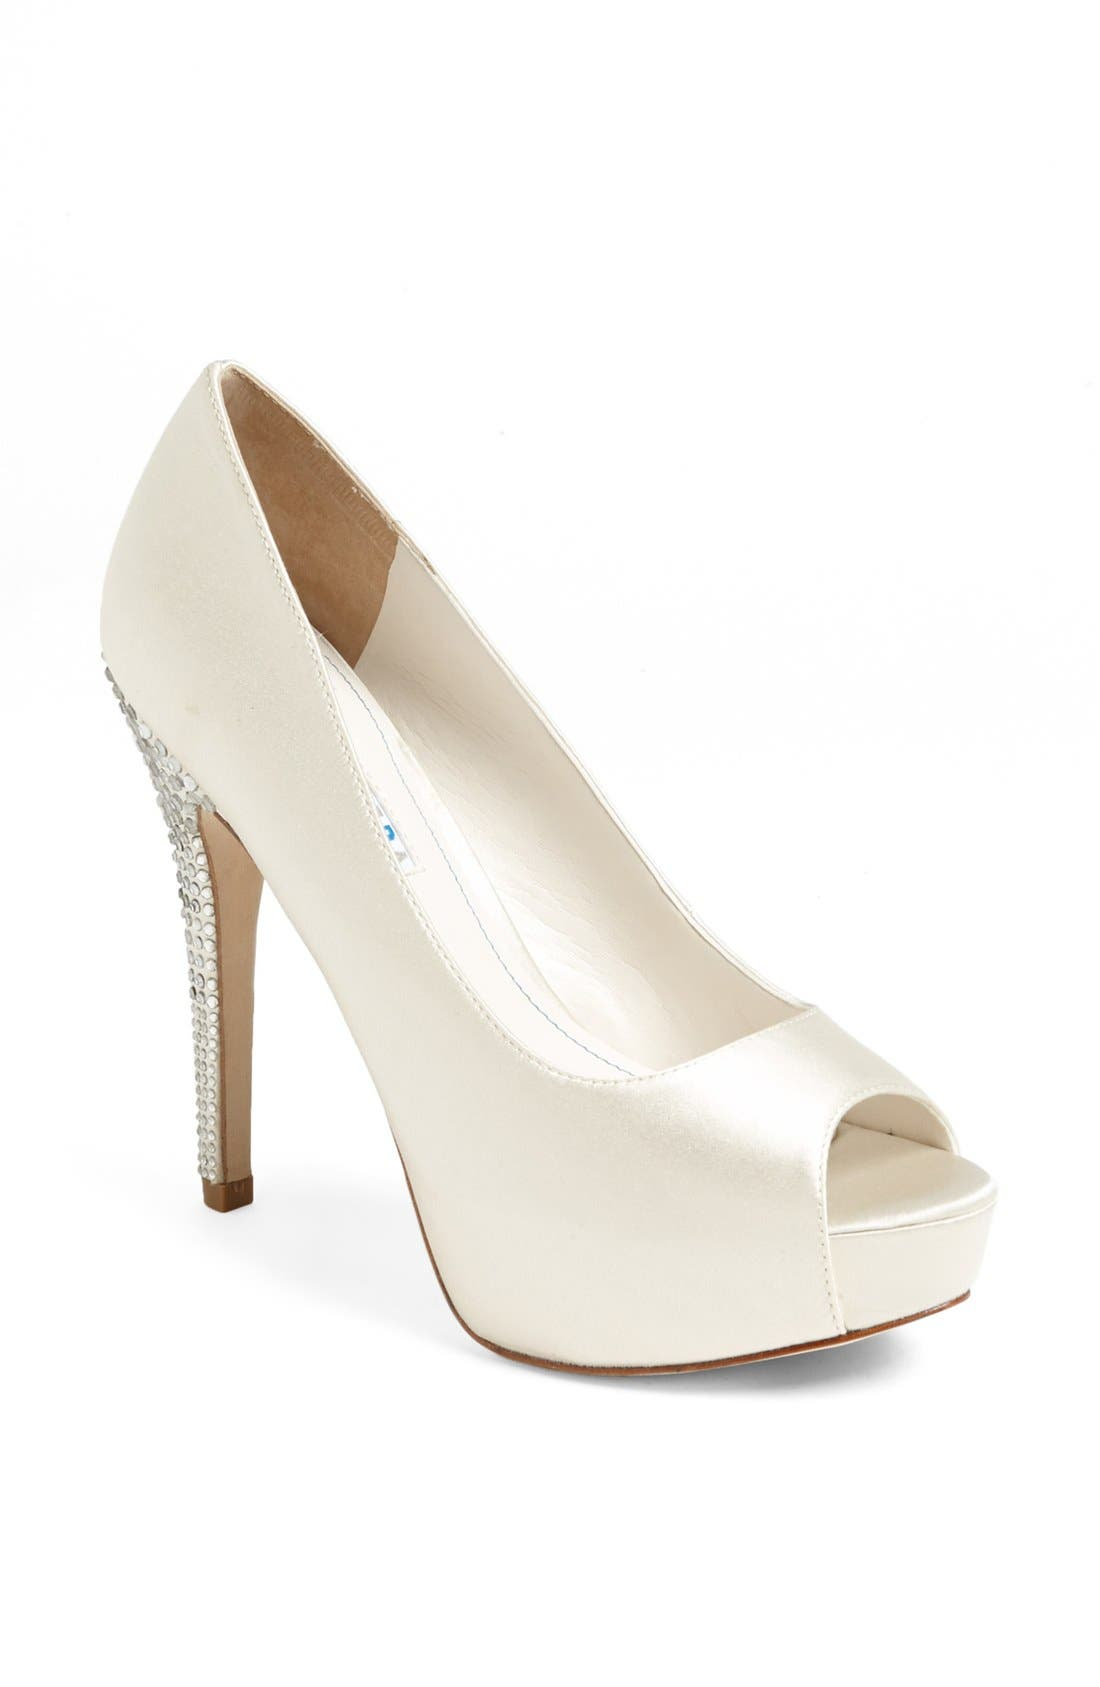 Main Image - David Tutera 'Princess' Pump